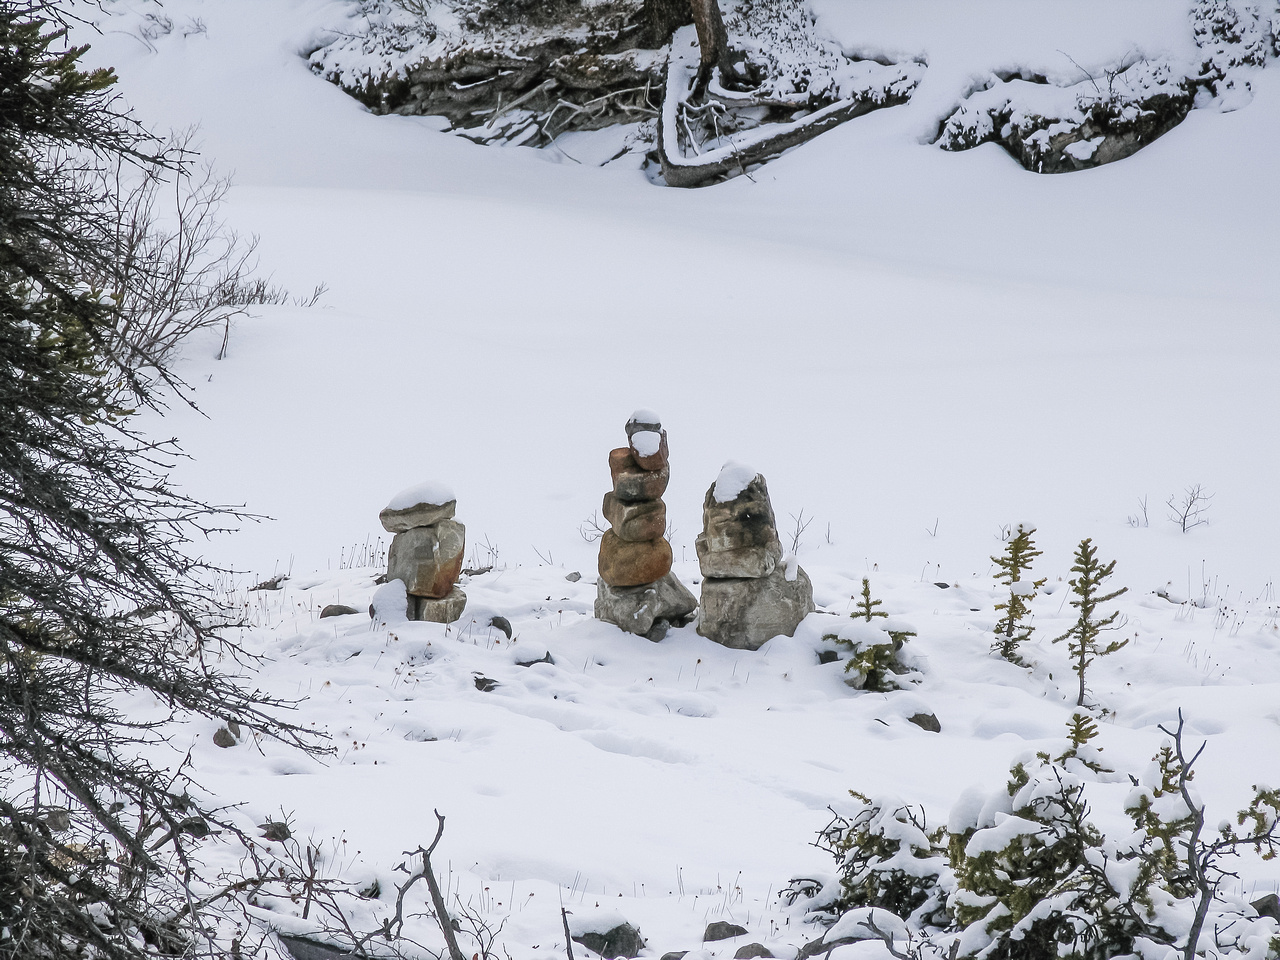 These cairns mark the spot to leave the Wilcox Pass trail and cross Tangle Creek to the ridge.